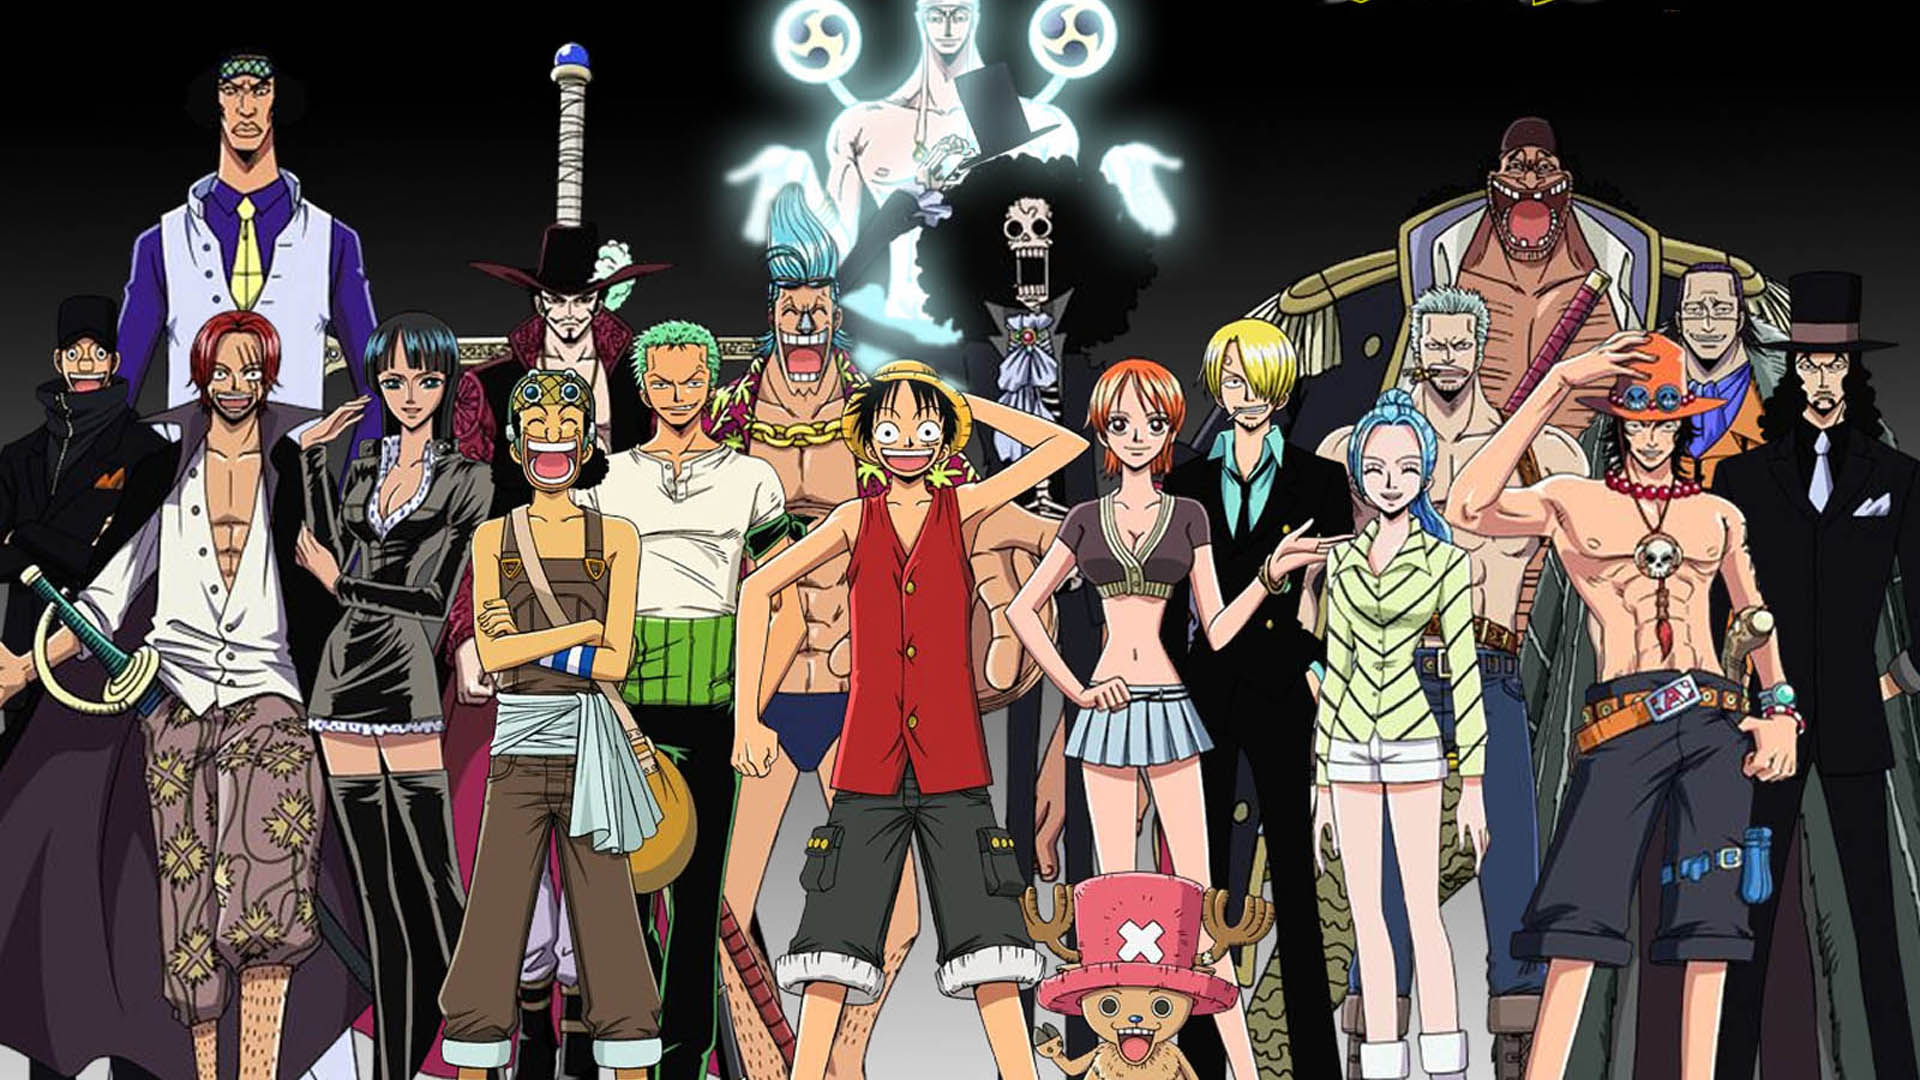 Anime-One-Piece-wallpaper-wp3602562